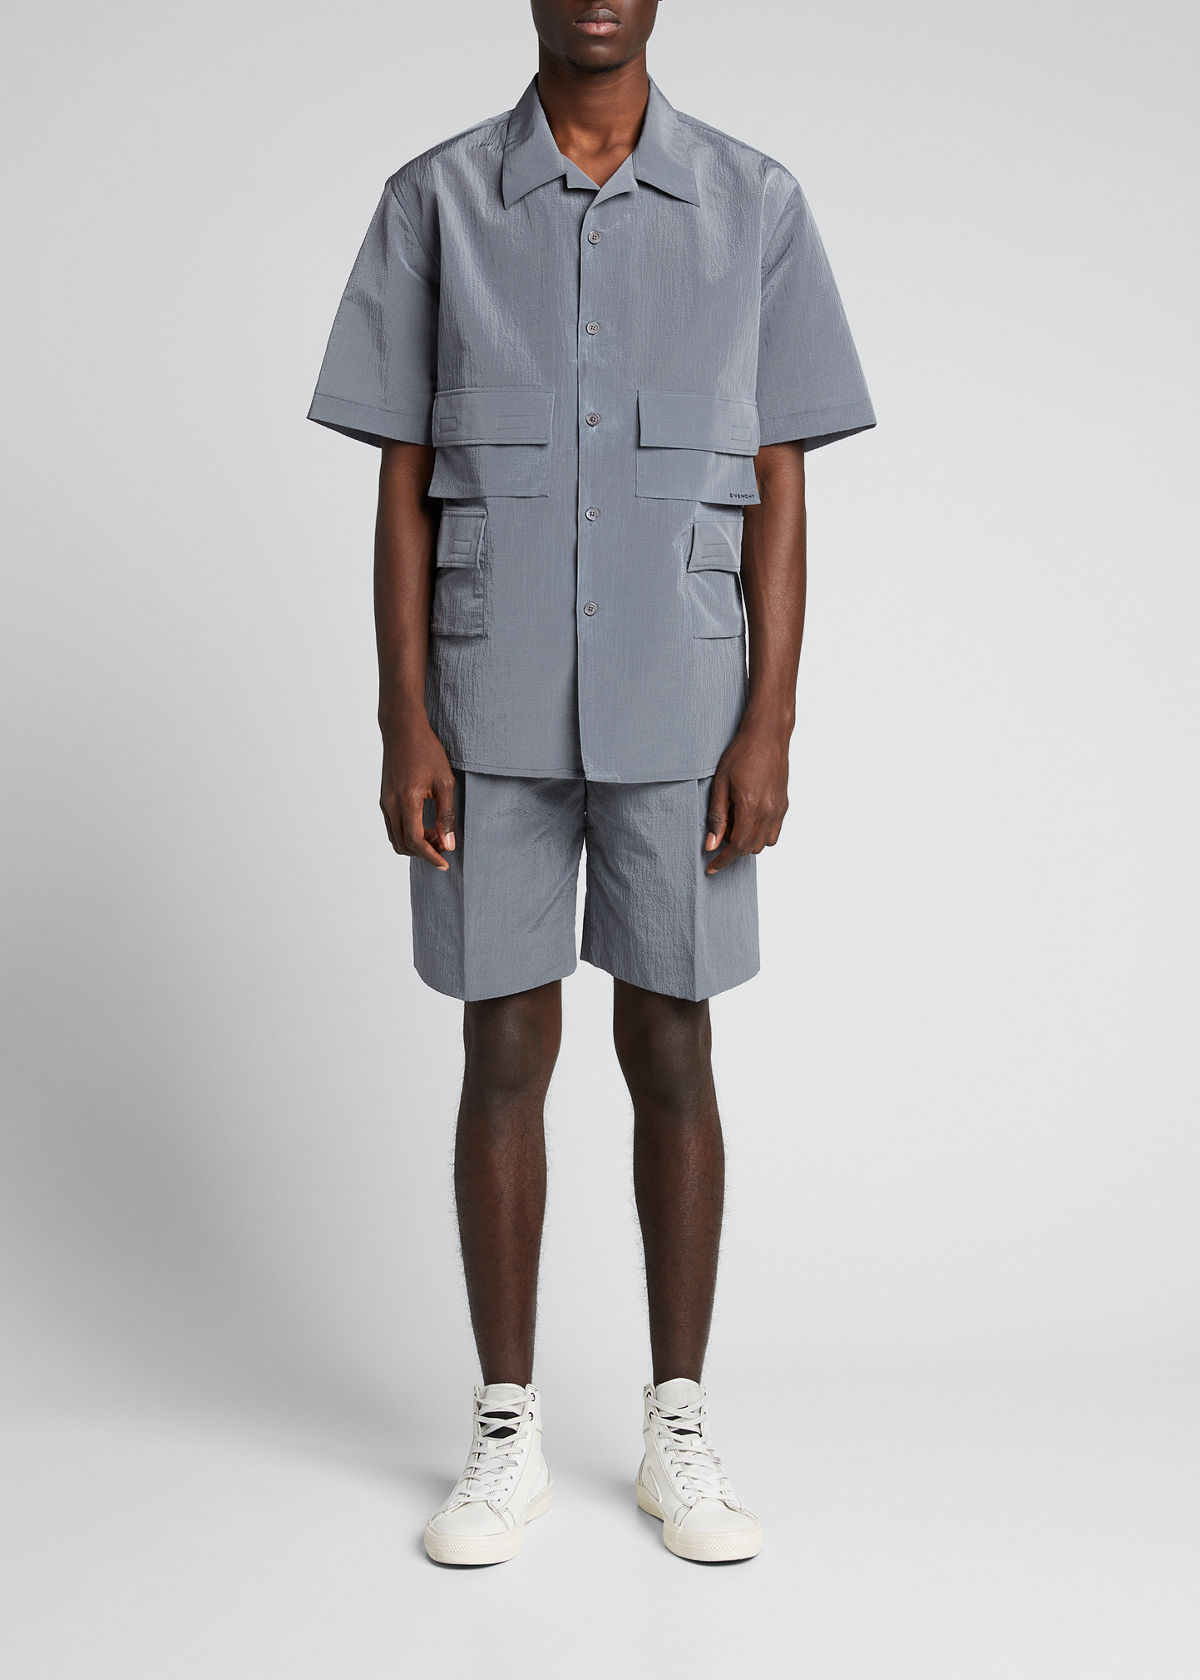 Givenchy MEN'S TECH SEERSUCKER PLEATED SHORTS